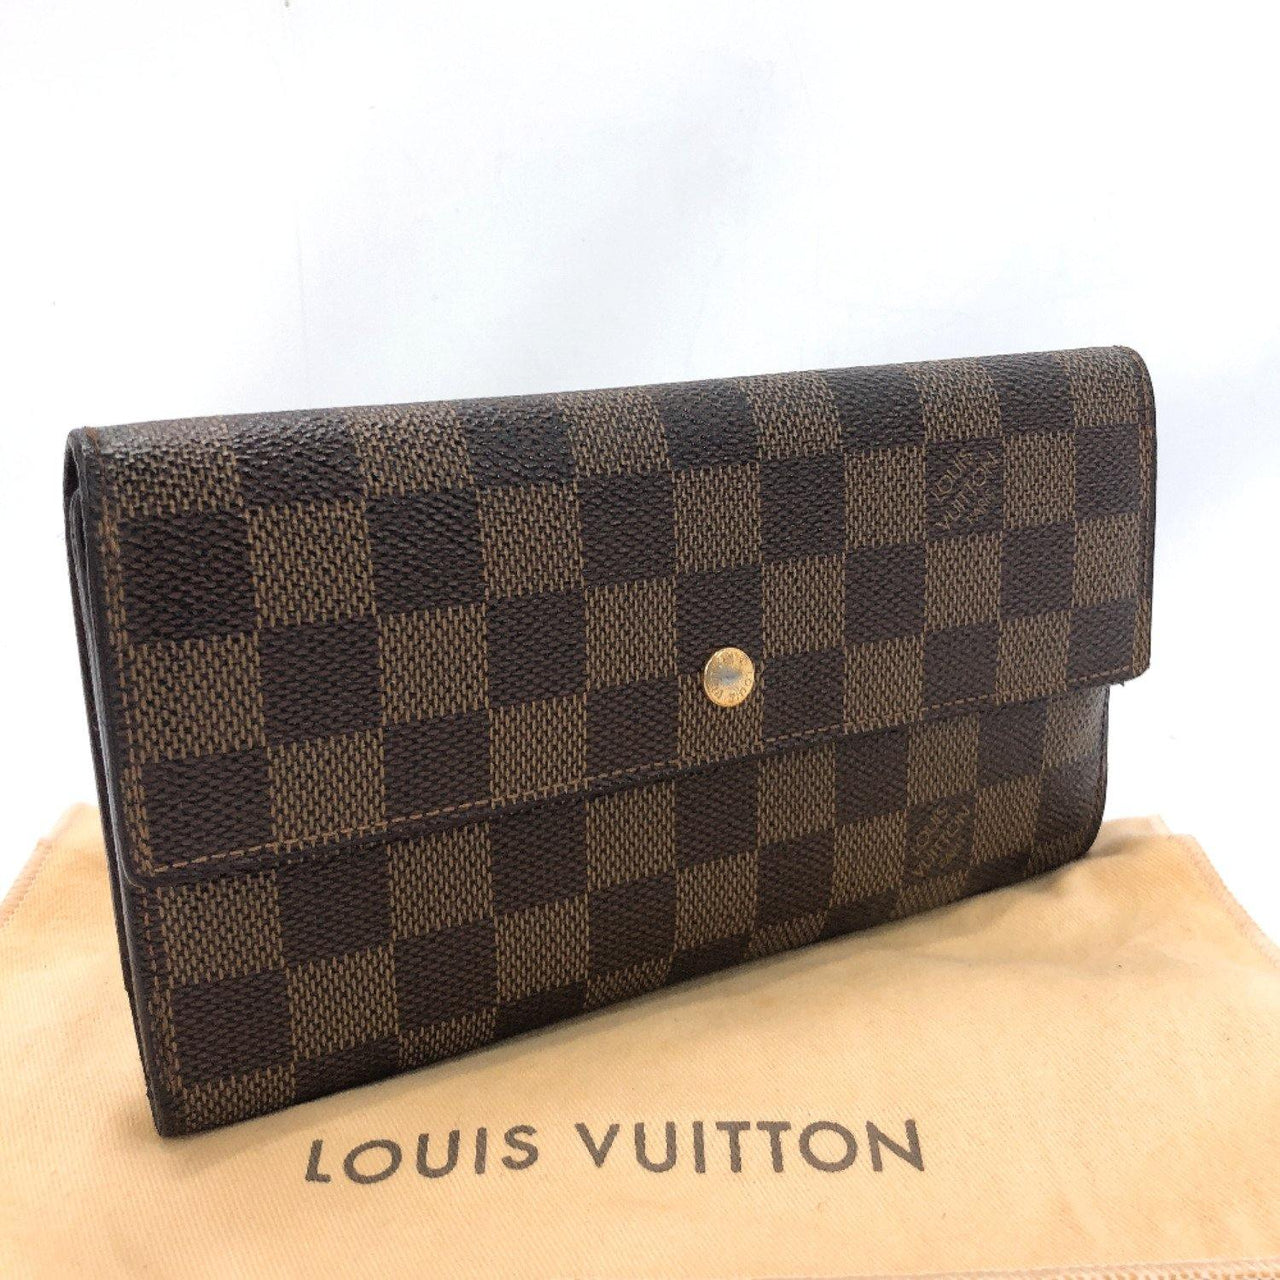 LOUIS VUITTON purse N61217 Portfoy International Damier canvas Brown unisex Used